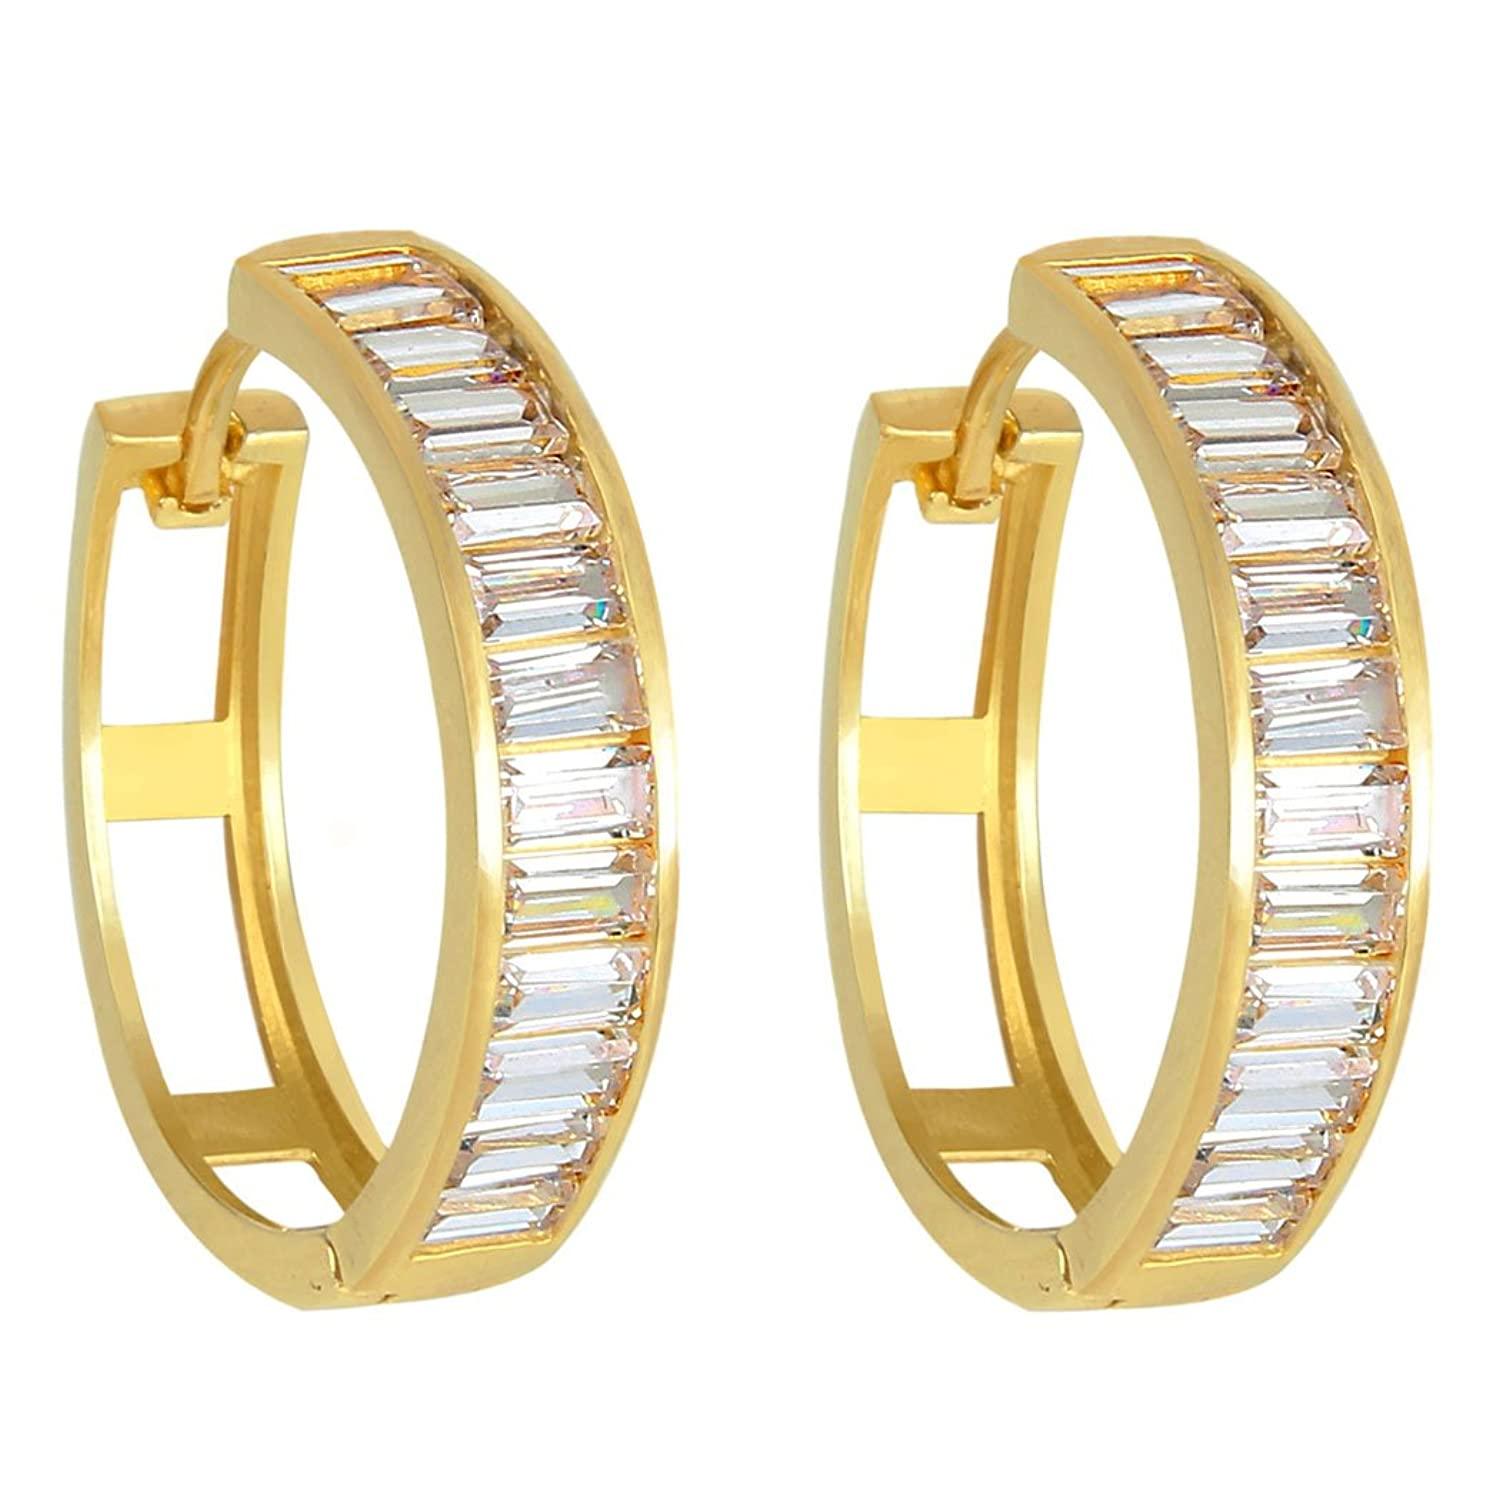 EVER FAITH 925 Sterling Silver CZ Channel Setting Baguette Gold-Tone Huggie Hoop Earrings Clear